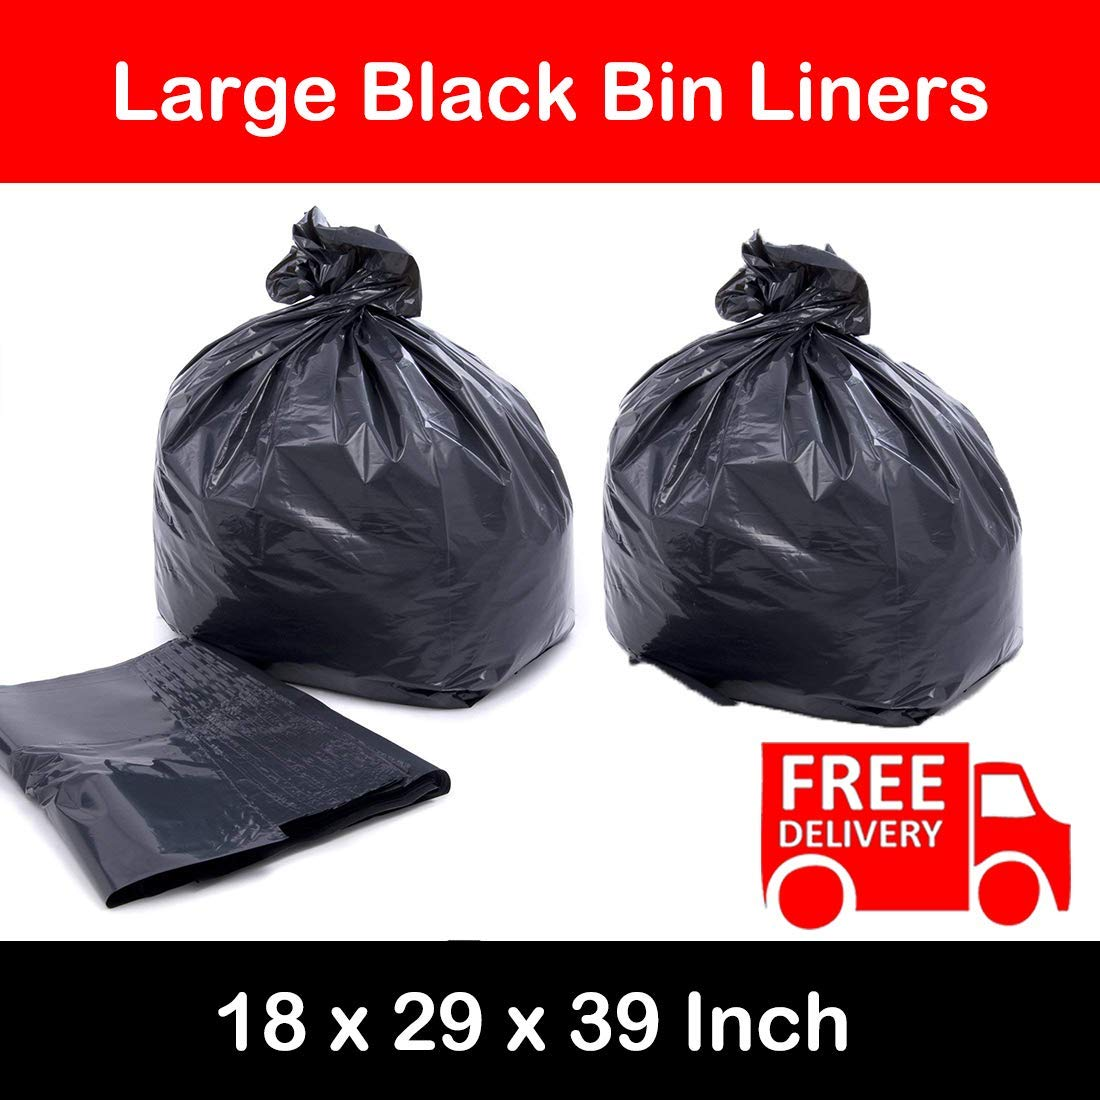 BLACK HEAVY DUTY LARGE REFUSE BAGS SACKS BIN LINERS RUBBISH 18x29x39 INCH BULK (250) Elite-Packaging